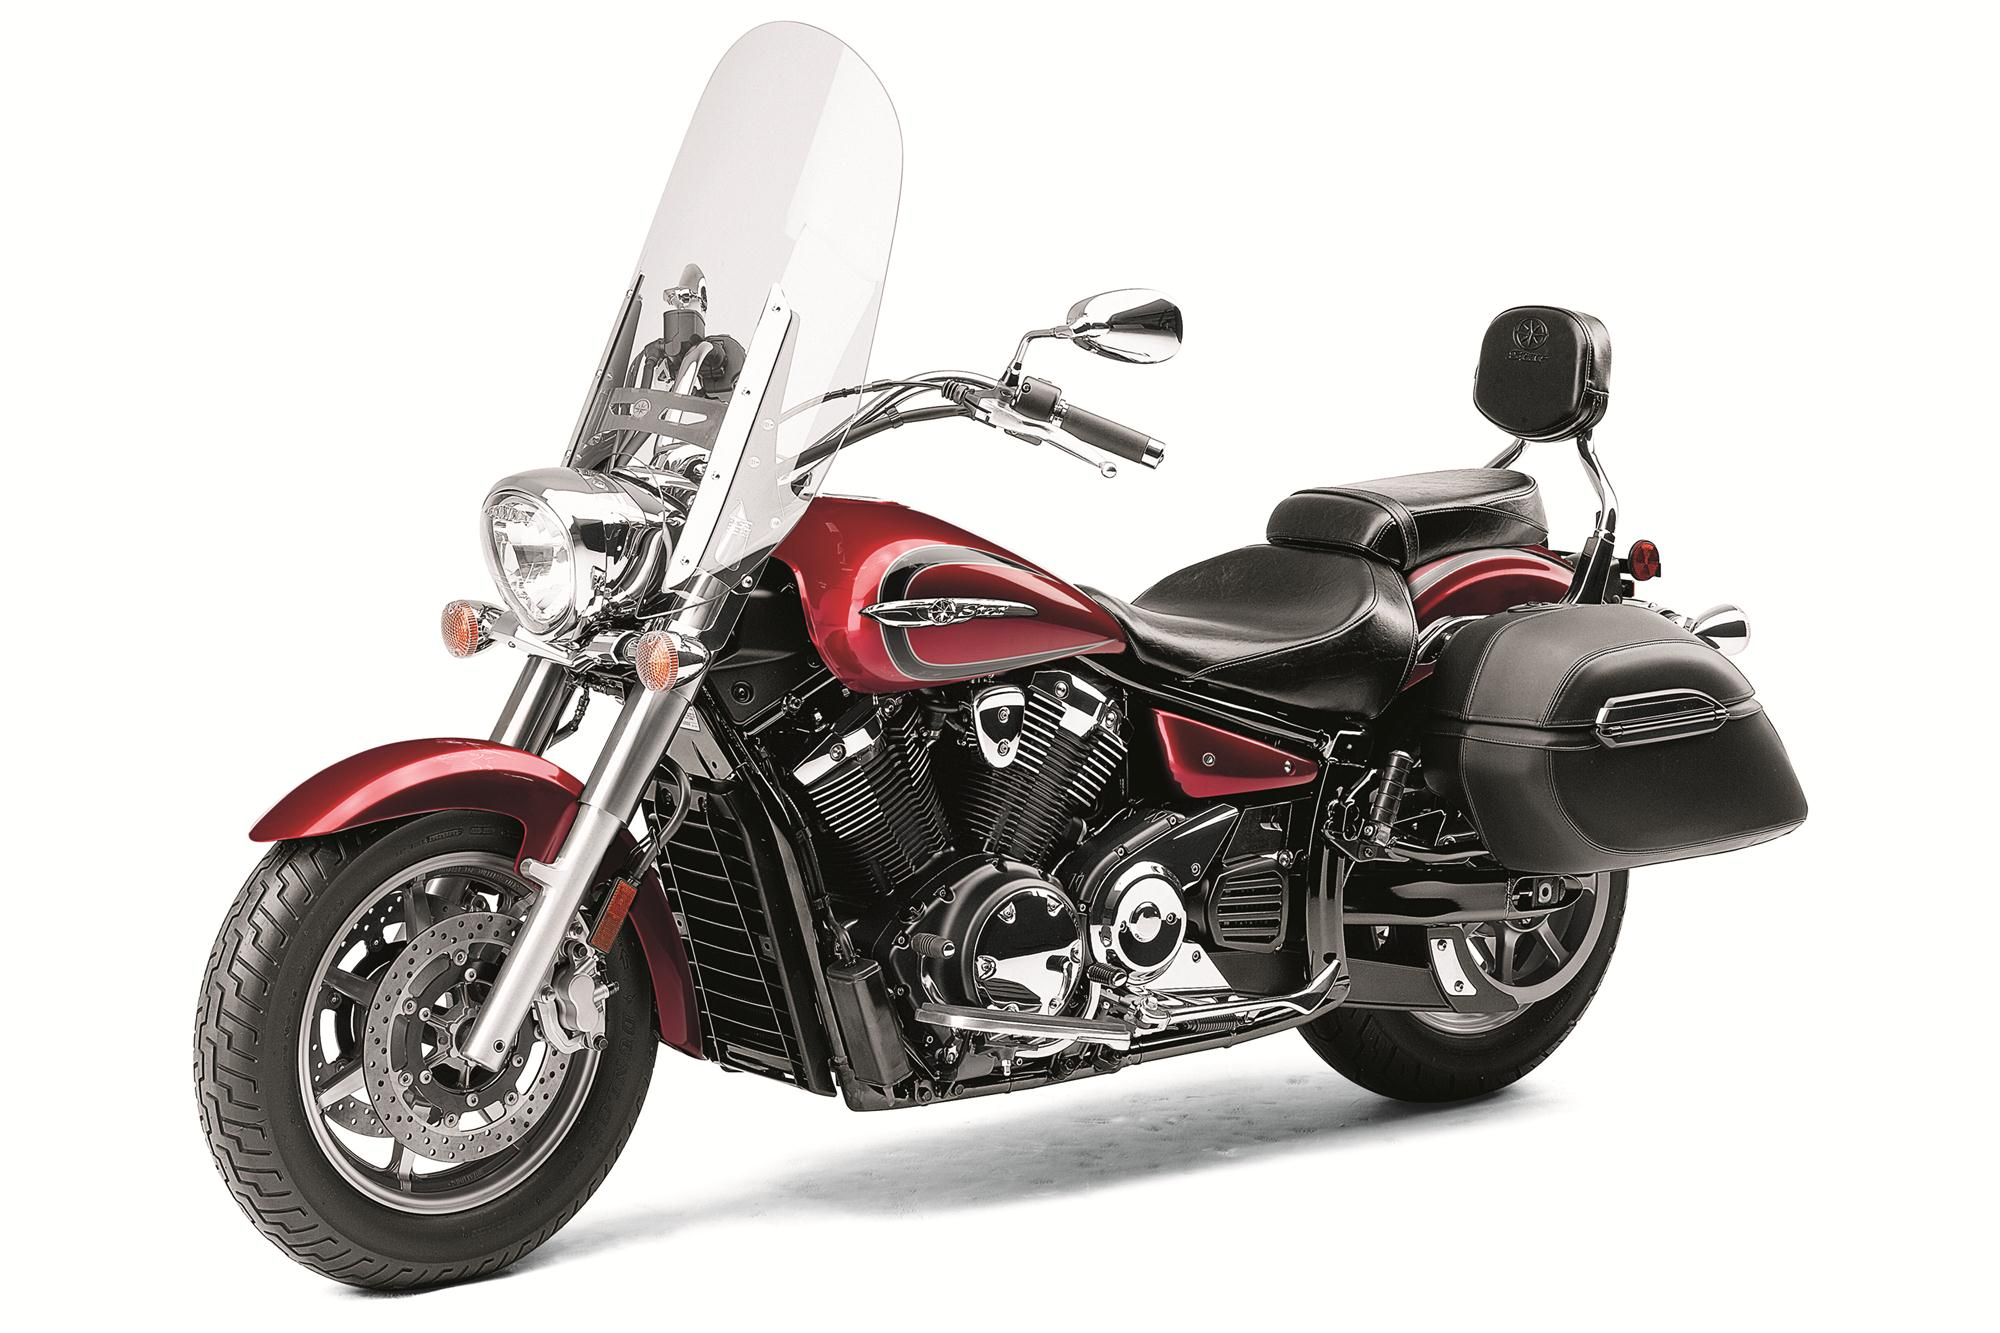 Yamaha V Star Motorcycle Reviews